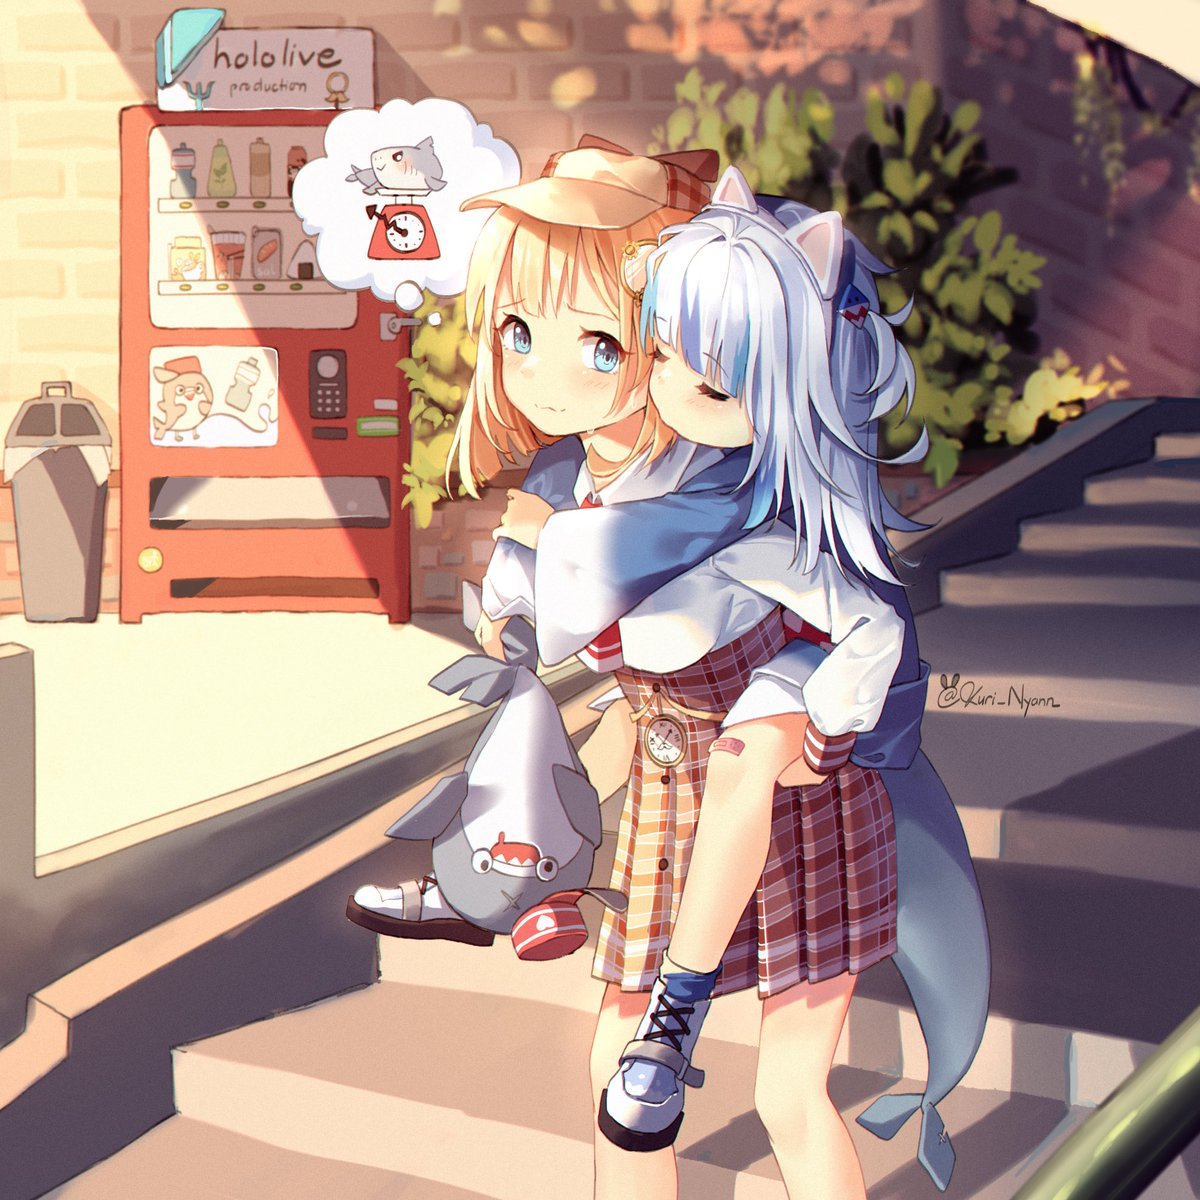 Gura x Amelia : Sequel #2 All day having fun together now it's time to go home...she's not small tho #gawrt #gawrgura #ameliaRT #amesame